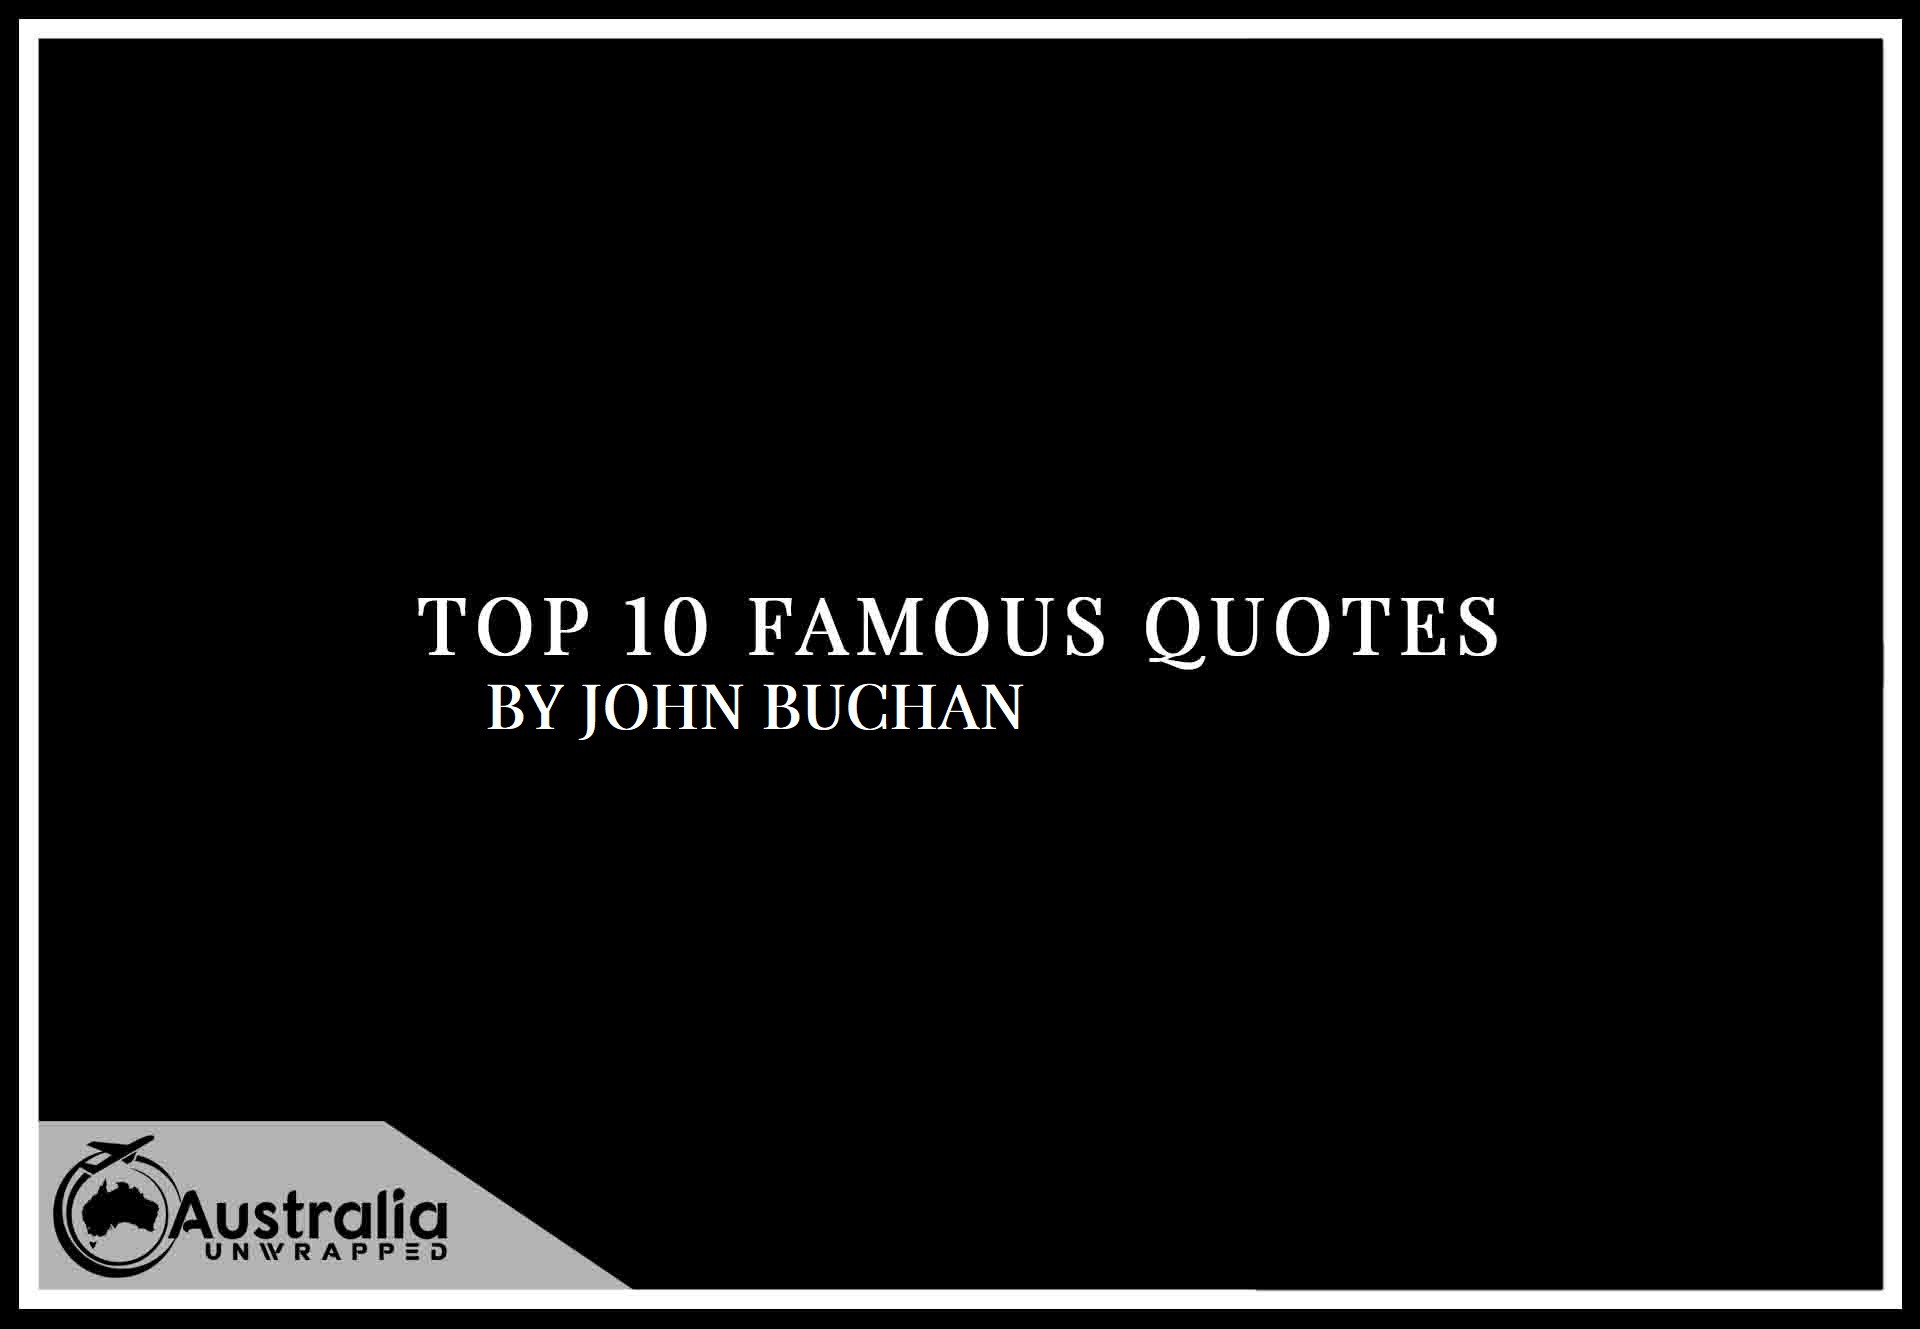 Top 10 Famous Quotes by Author John Buchan